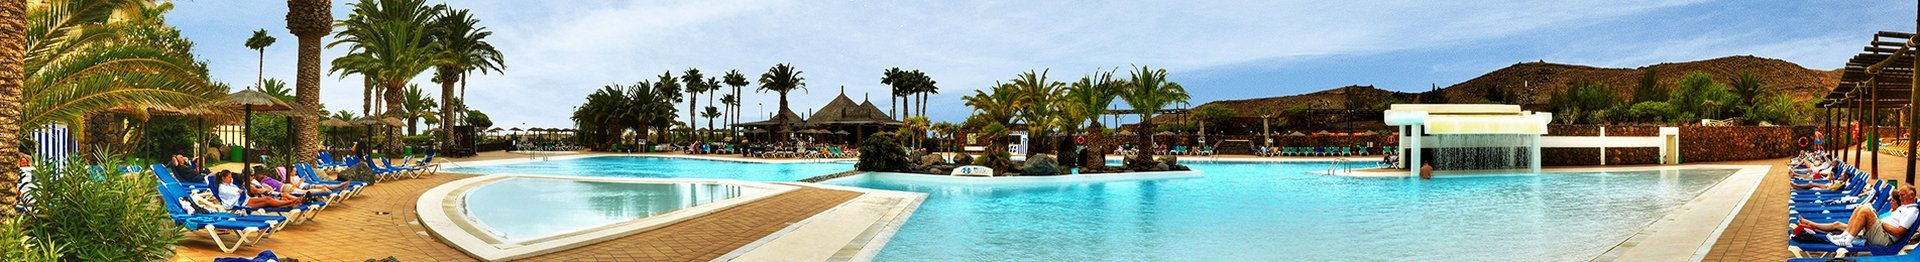 Beatriz Hoteles - Lanzarote - Photos